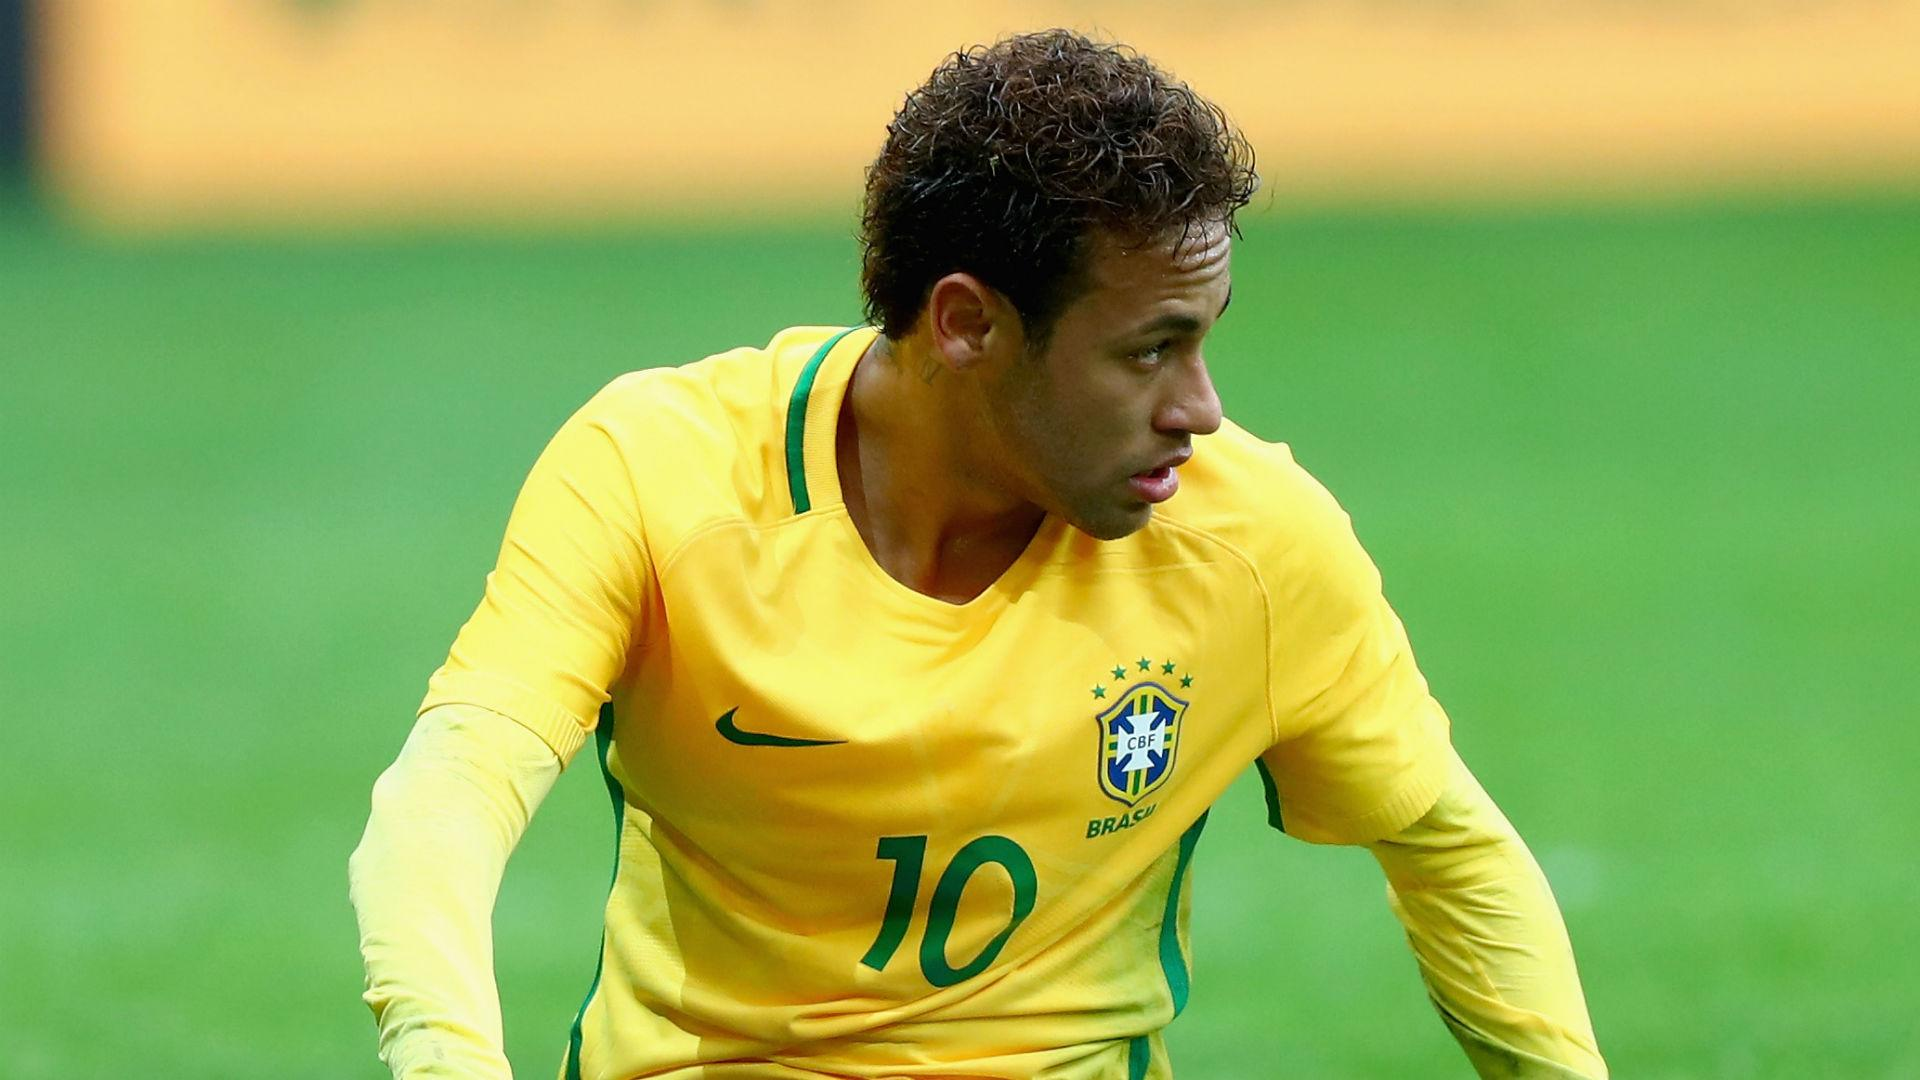 a87e1630b6a1 Neymar (foot) will be fit for the World Cup